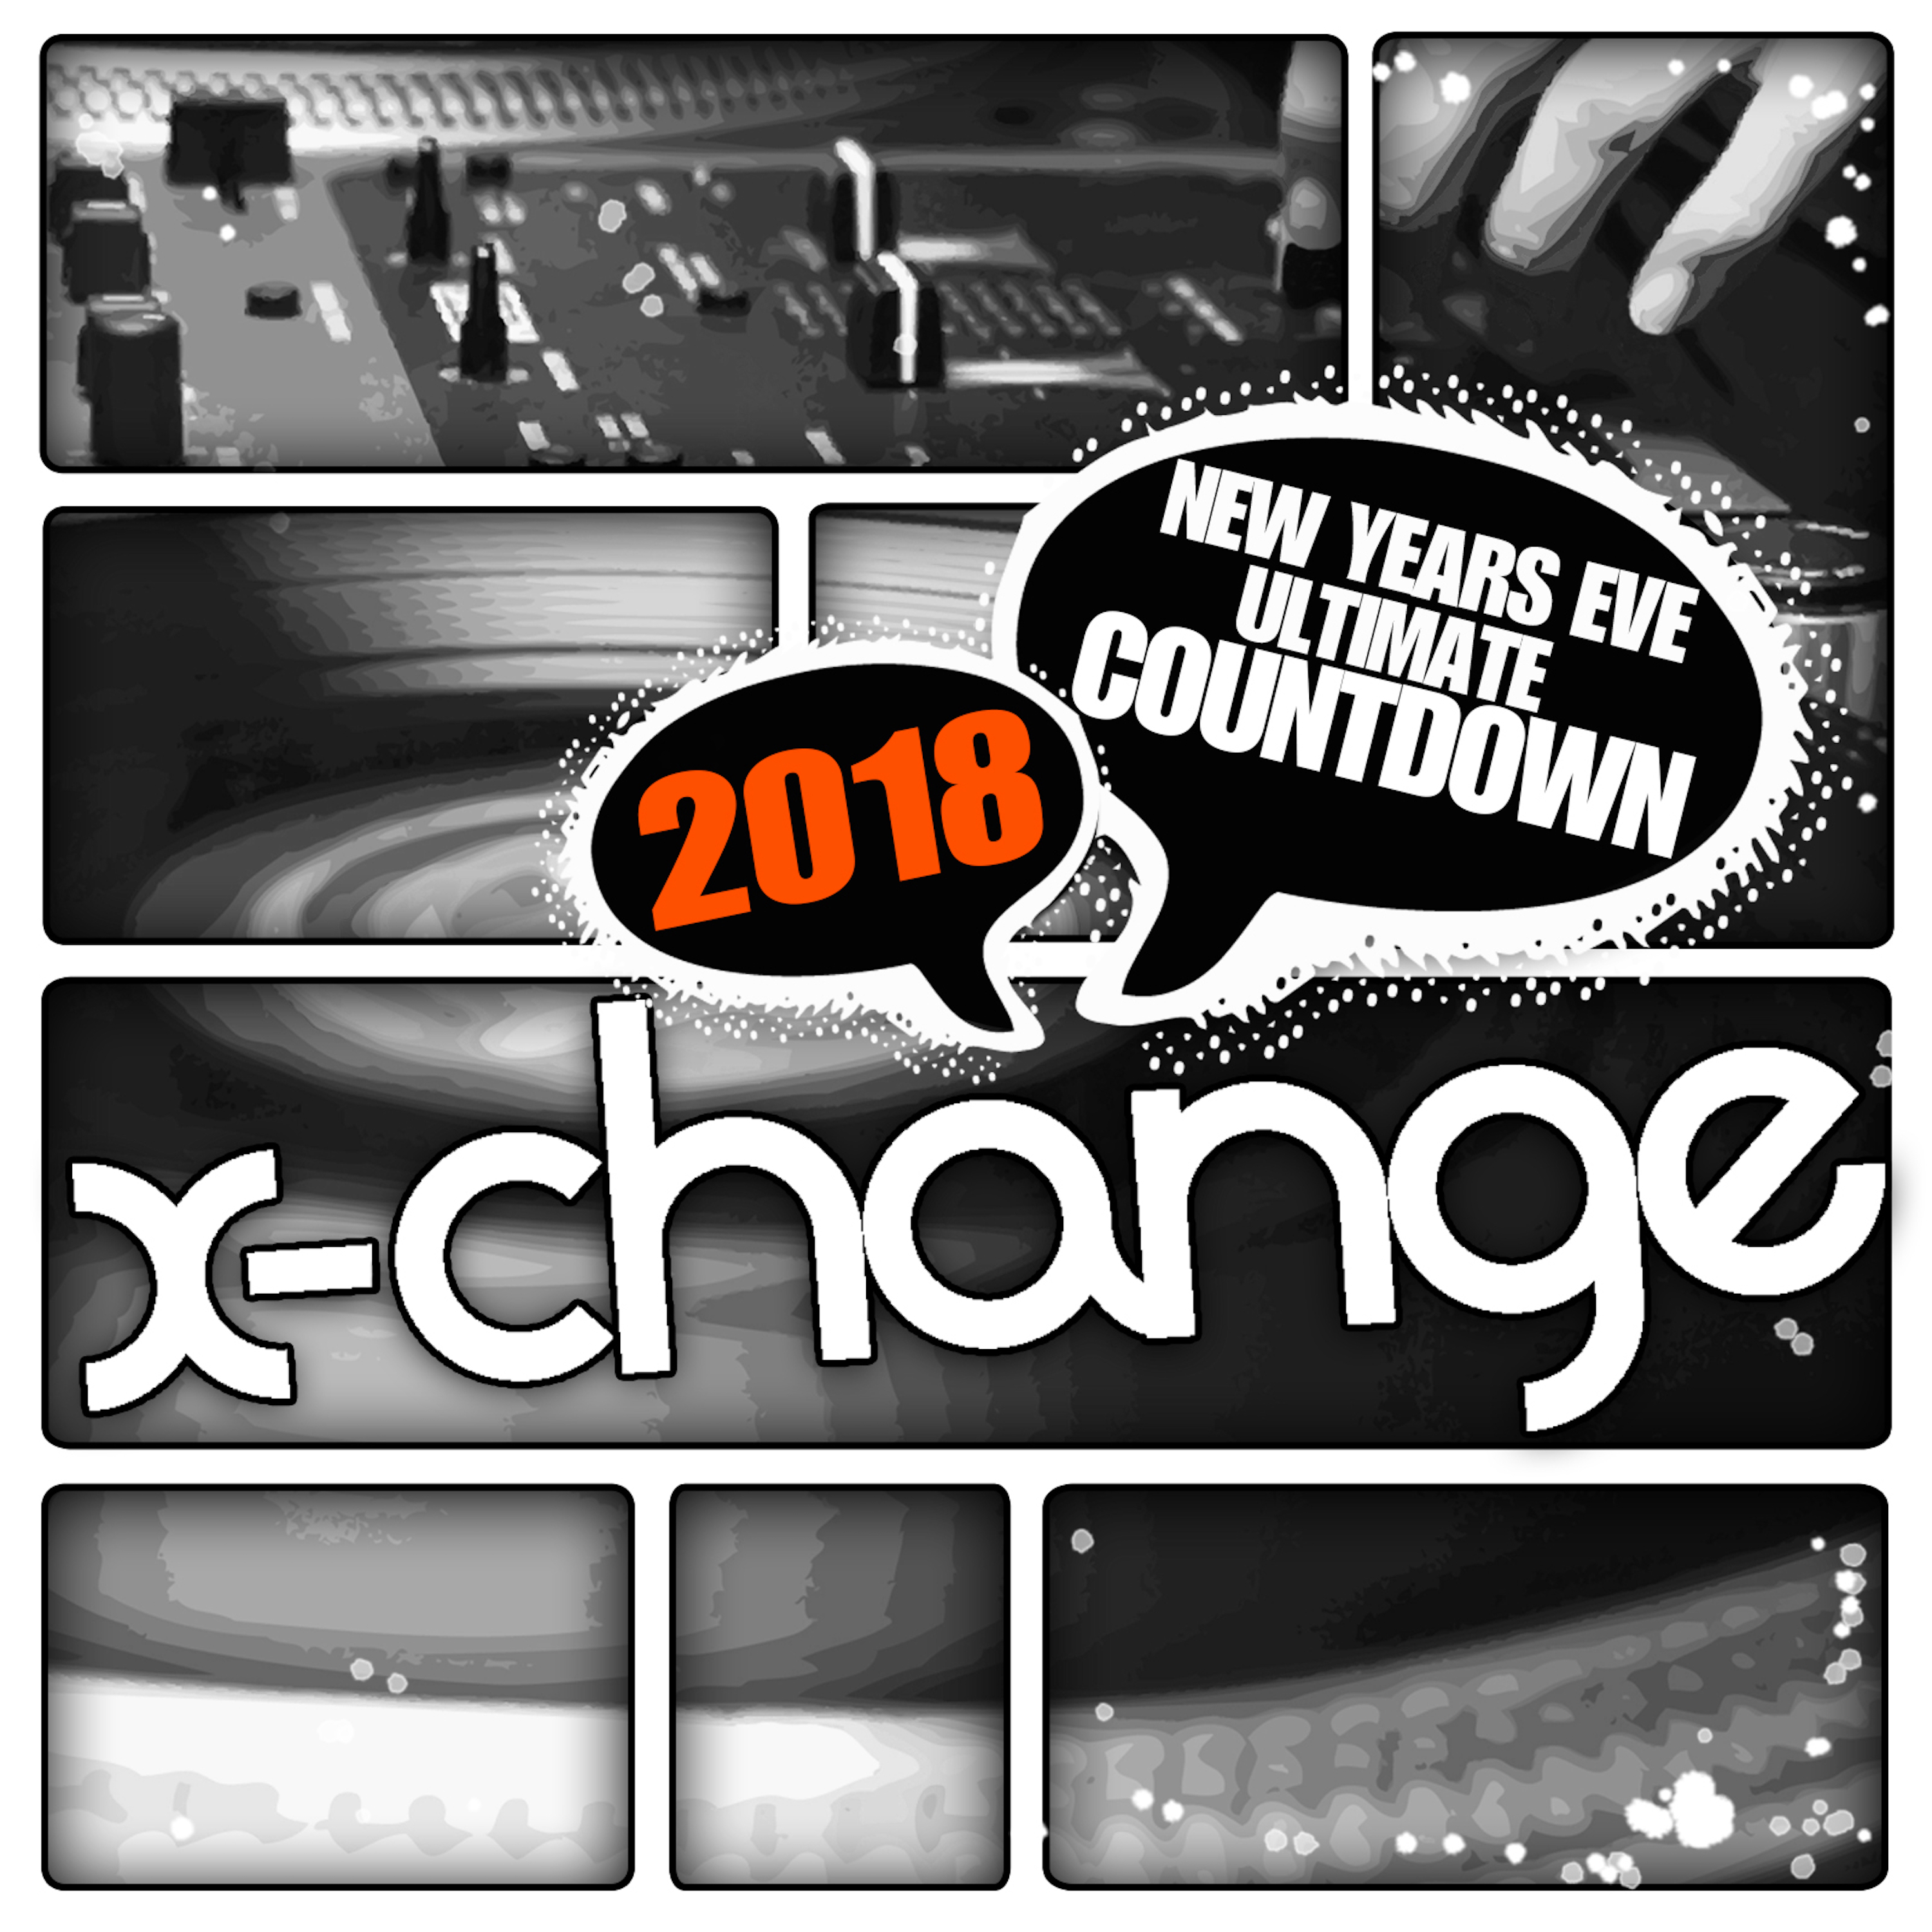 DJ X-Change - New Years Eve Ultimate Countdown 2018 Artwork